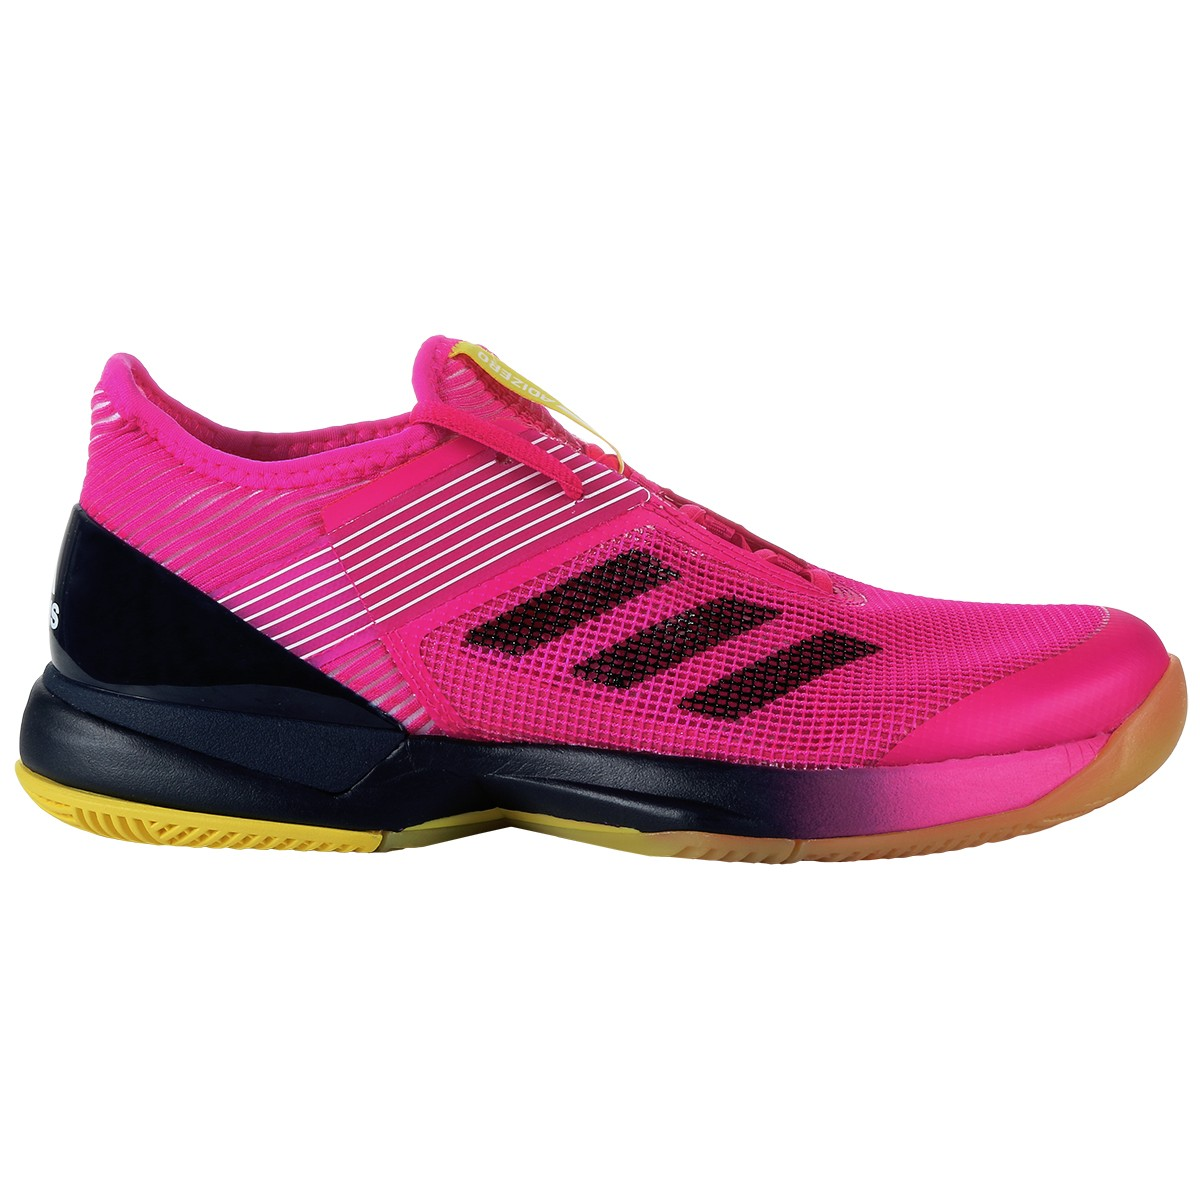 new product 6d9e2 5b475 CHAUSSURES ADIDAS FEMME ADIZERO UBERSONIC 3 TOUTES SURFACES +